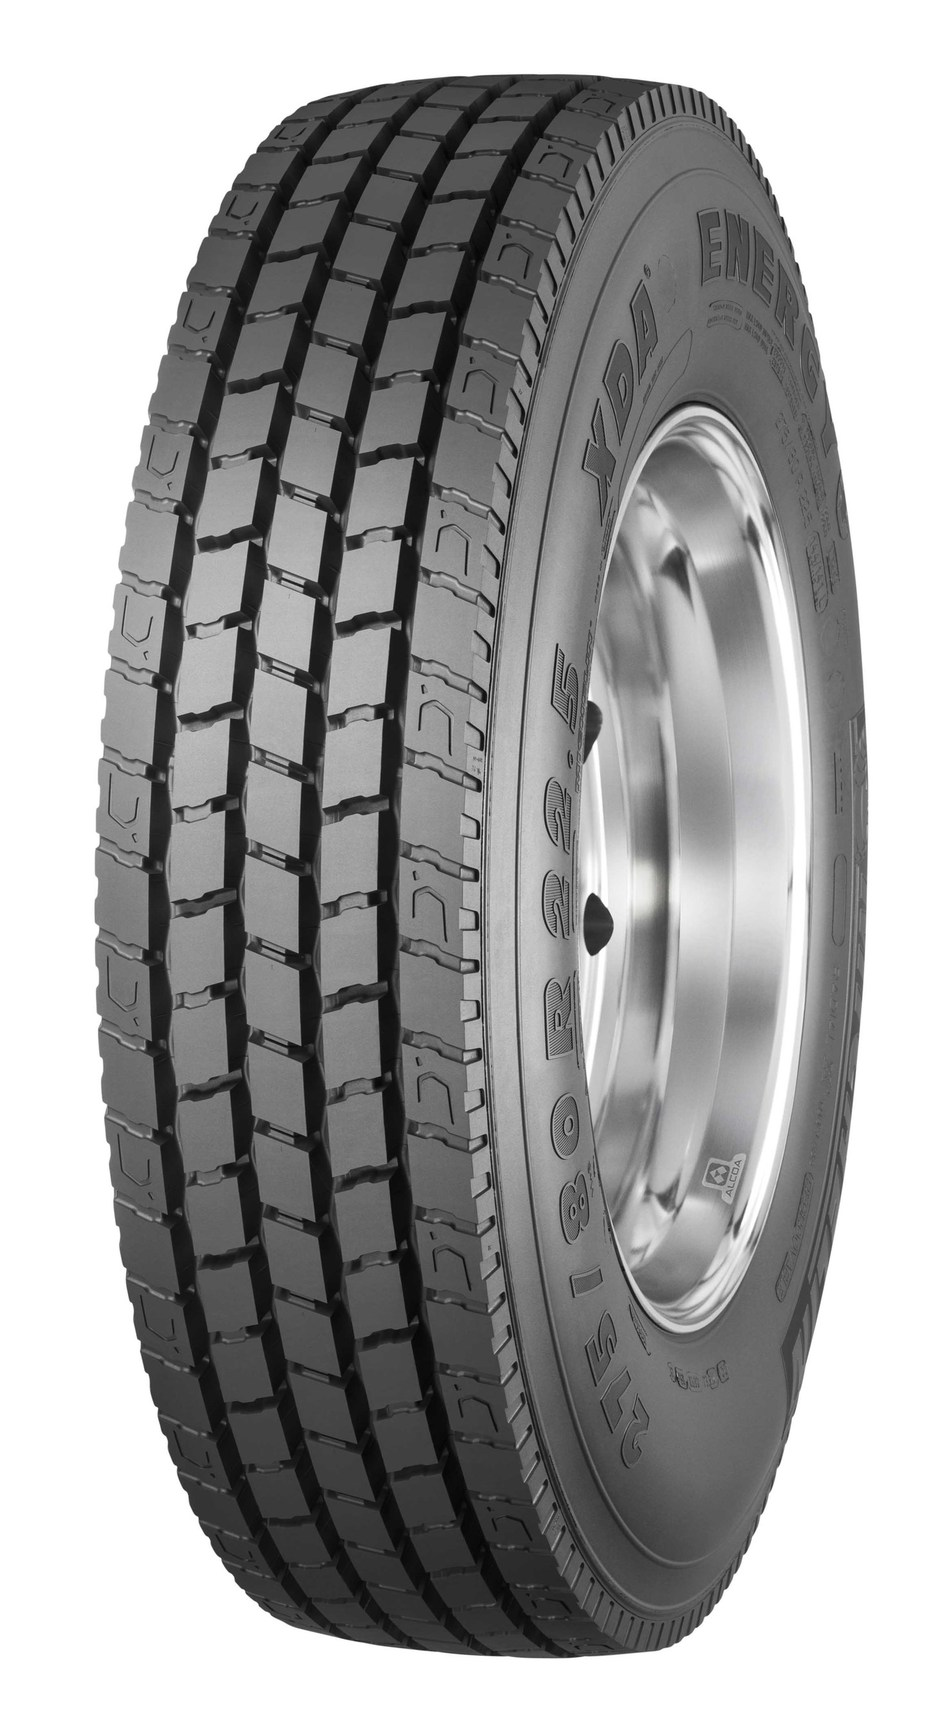 The new MICHELIN XDA Energy +, a dual drive-position tire for line-haul applications, is designed for fleets and owner-operators who are focused on fuel savings to reduce their operating costs. One of the main levers fleets have to improve their competitiveness is improving their fuel efficiency, and tires like the new Michelin XDA Energy + can play a key role. With rolling resistance accounting for approximately 35 percent of the total fuel cost of a Class 8 truck, the Michelin XDA Energy +